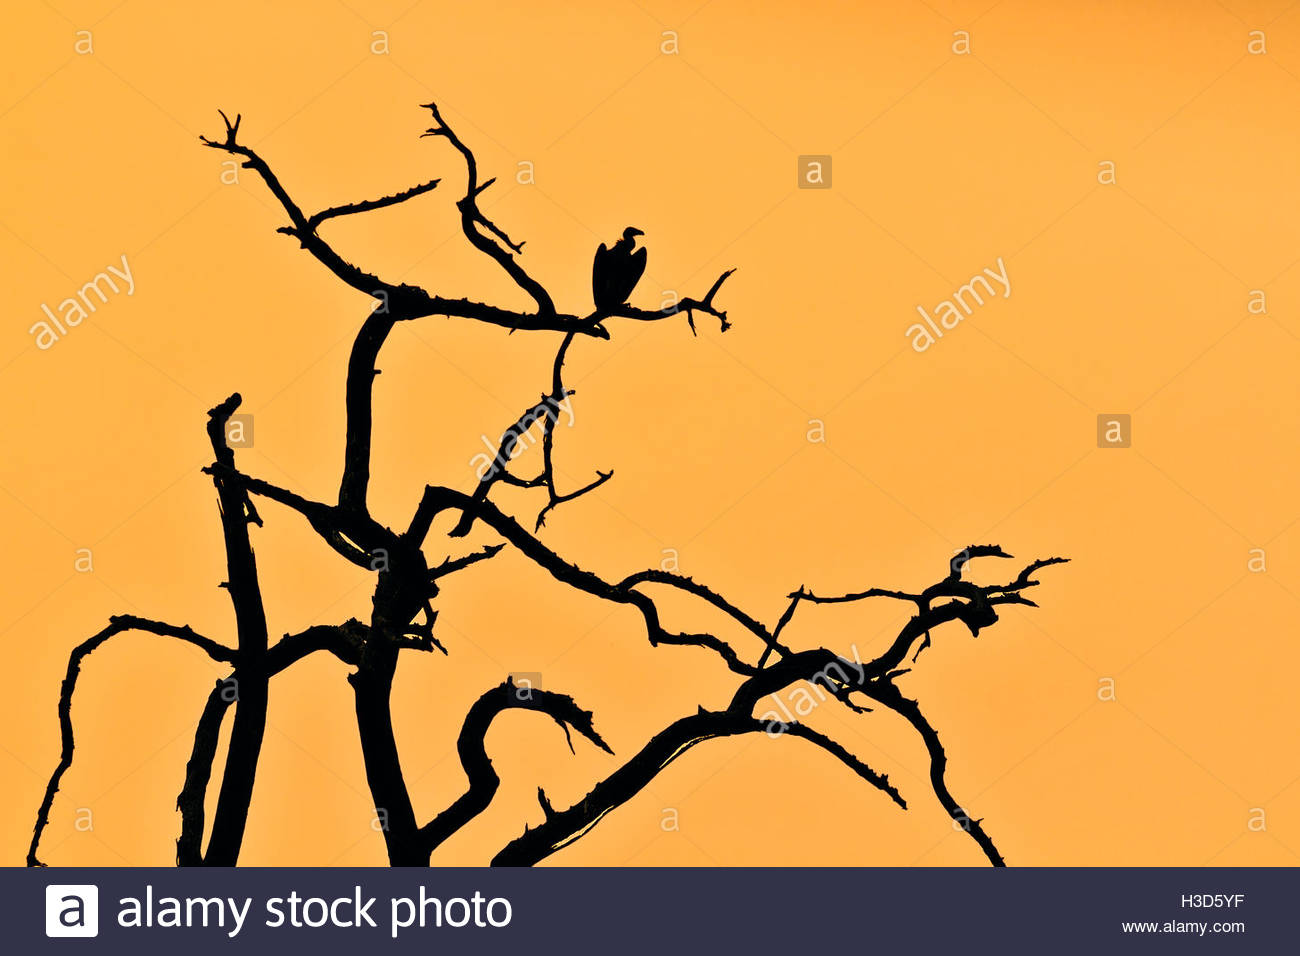 1300x956 African Tree Silhouette Stock Photos Amp African Tree Silhouette